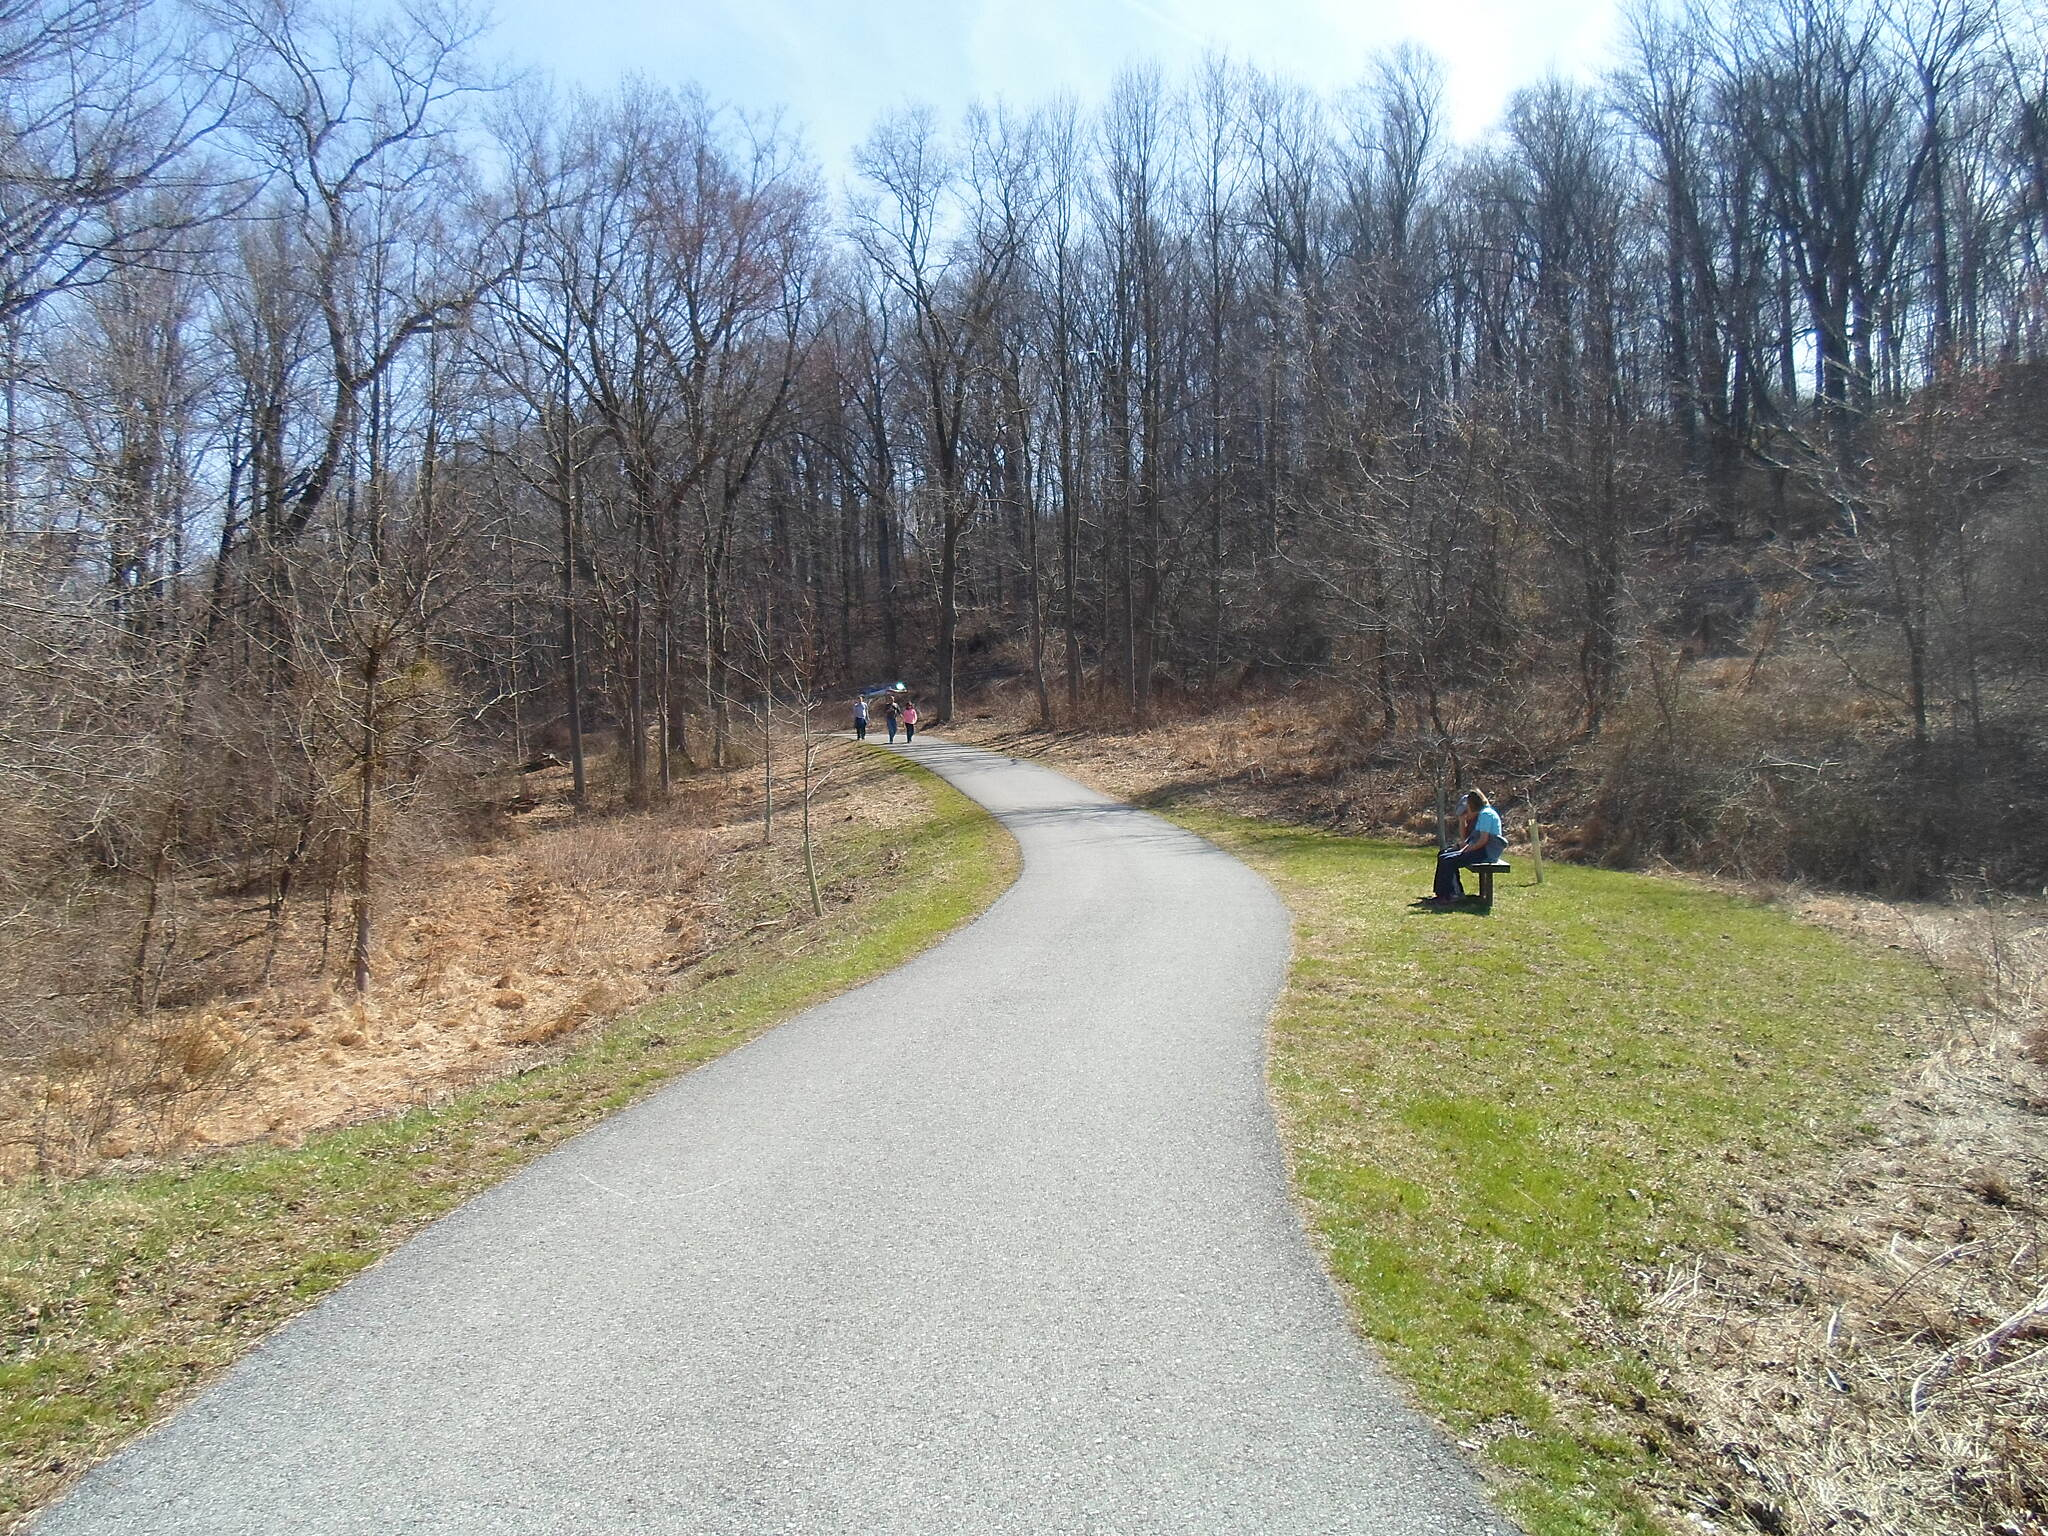 East Branch Brandywine Trail East Branch Brandywine Trail The trail is not level; this gentle slope is located about a mile south of the northern trailhead.